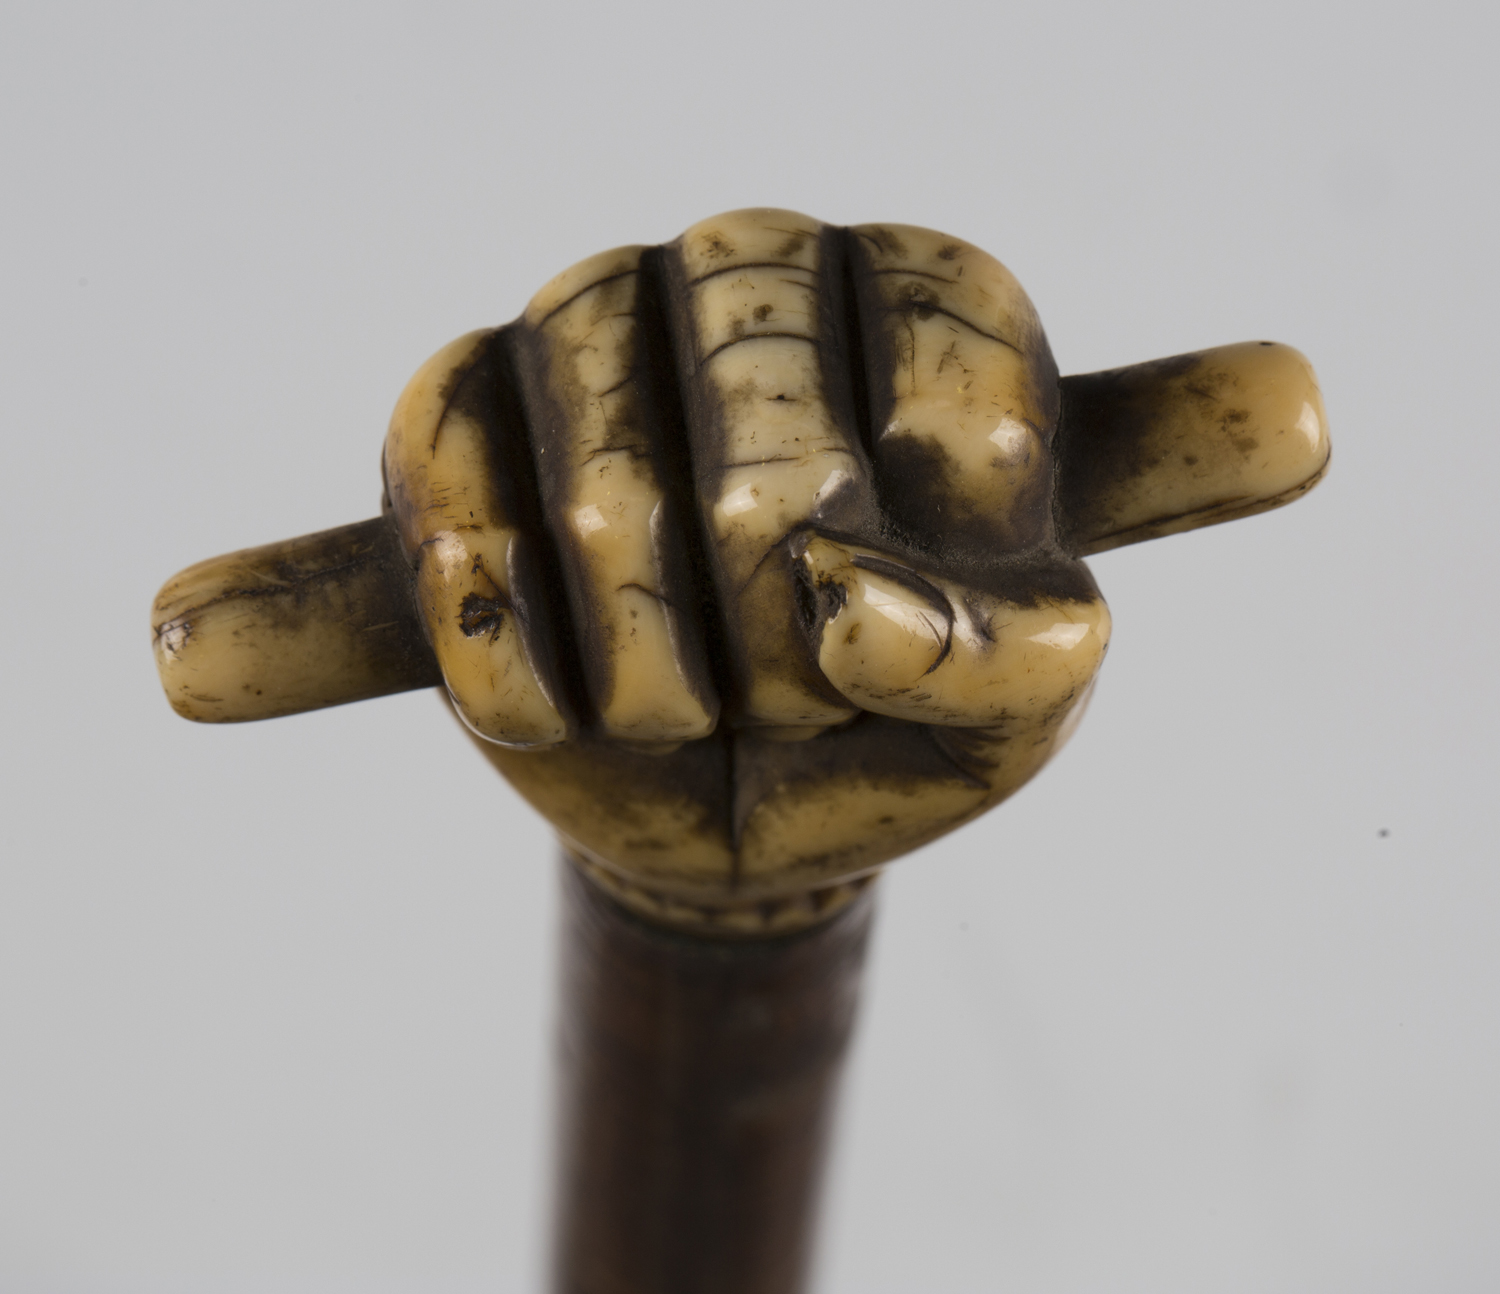 A 19th century sectional joined leather walking cane, the ivory handle carved as a hand holding a - Image 4 of 7